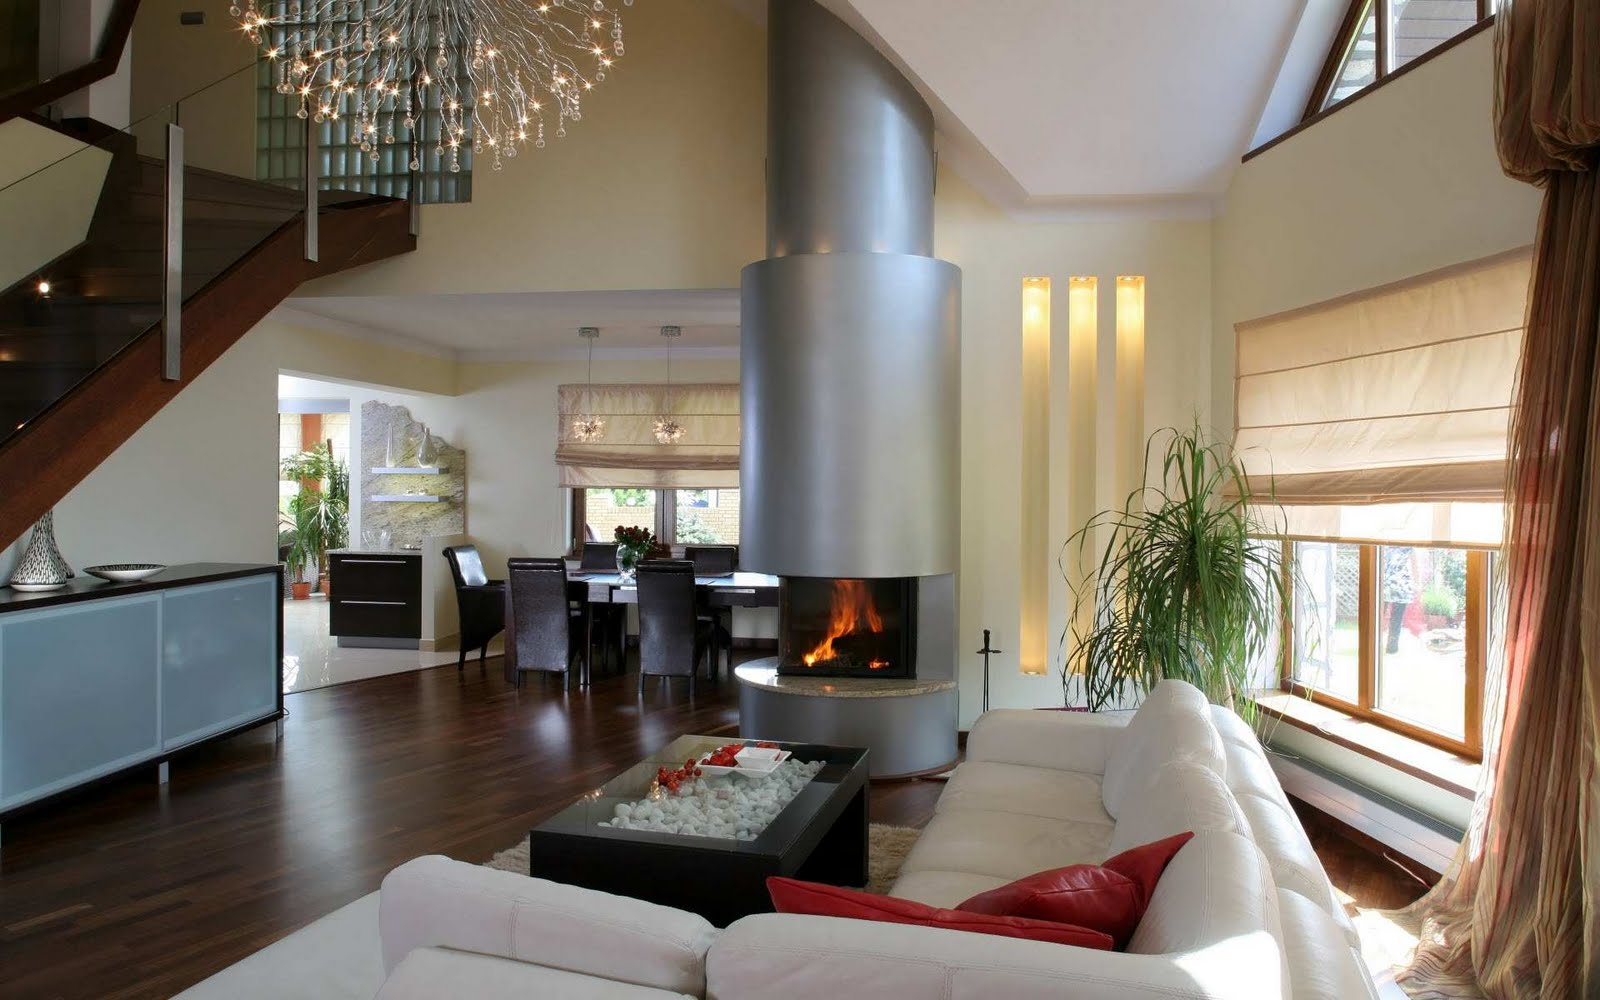 home interiors new name 10 salas modernas con chimenea ideas para decorar 18386